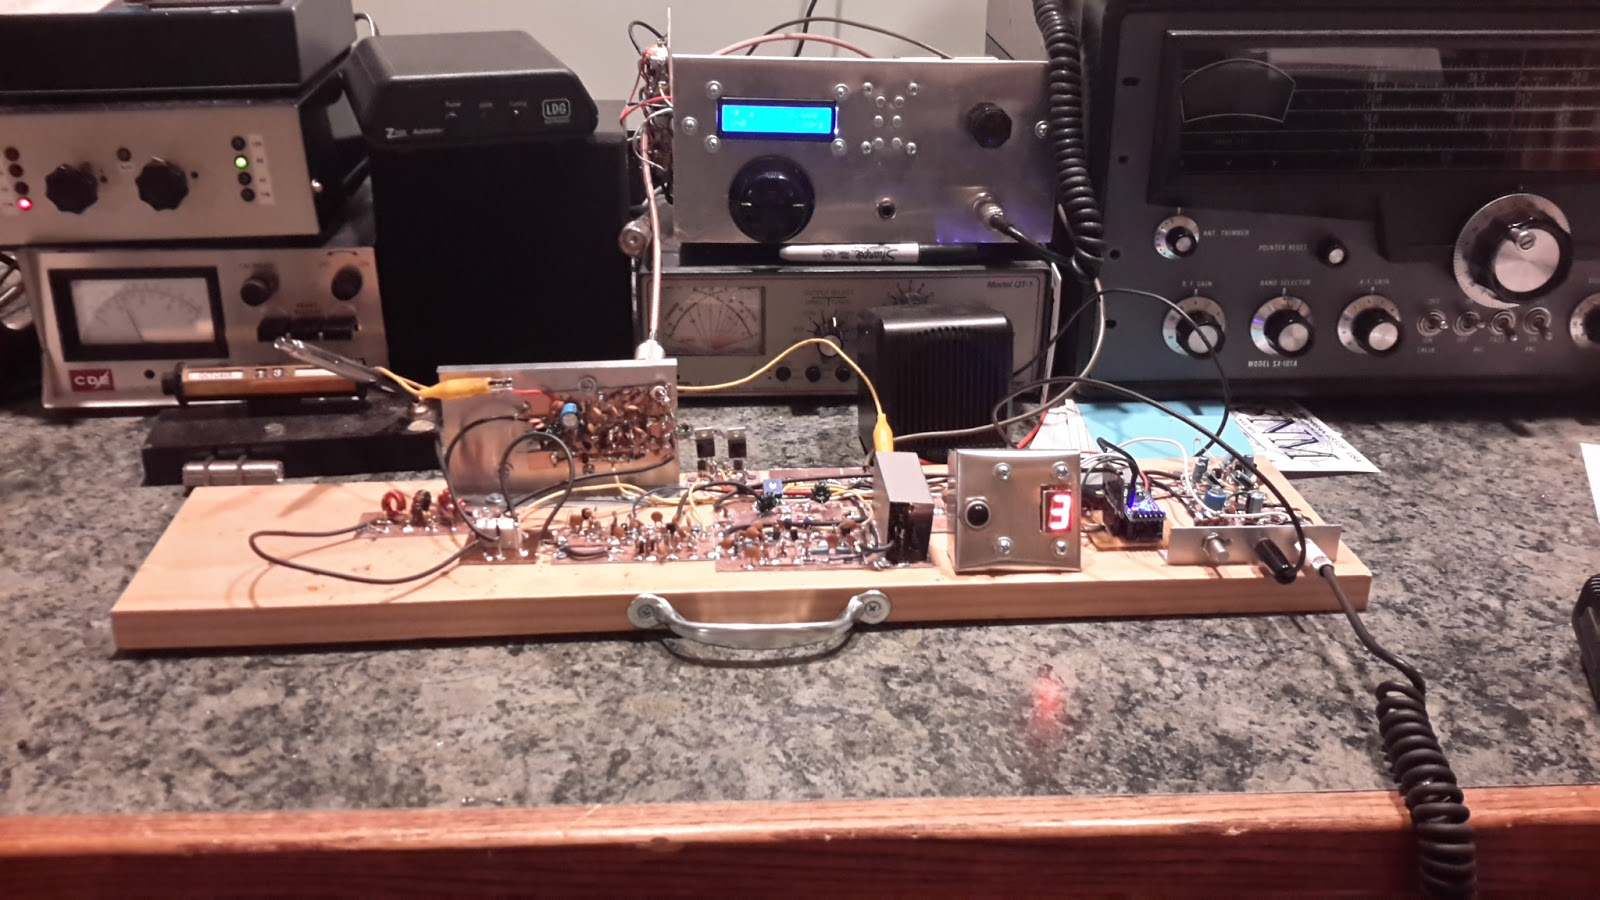 Steves Eclectic Radio Blog October 2016 Amplifier Circuit Using Lm380 With Mic 400x400 Mini After A Few Months Of Casually Melting Solder The Planker Made Its Maiden Voyage Yesterday Afternoon When I Enjoyed Brief Chat Lauren Wd5hio In